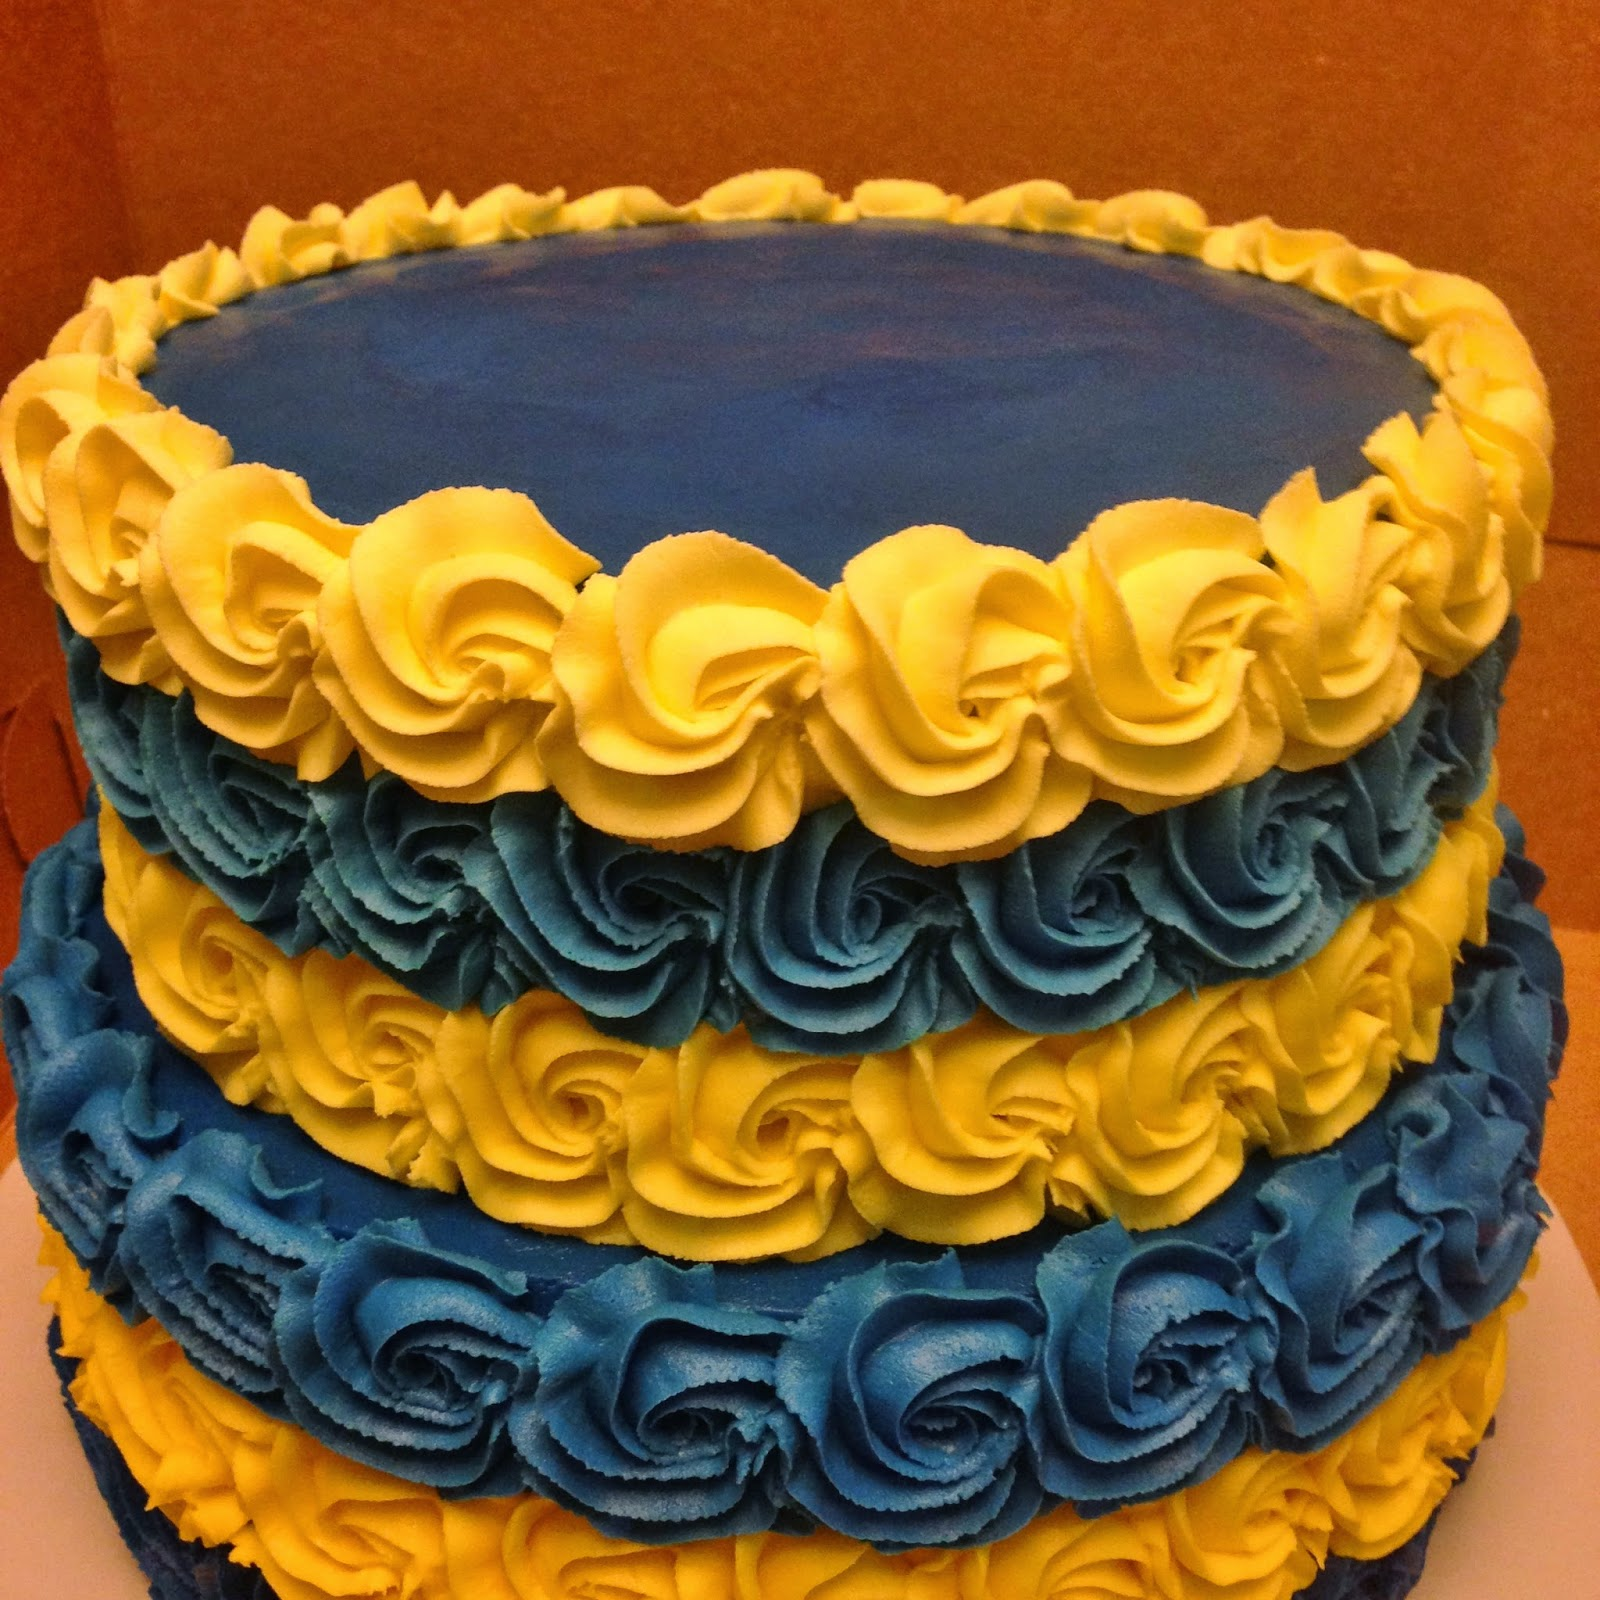 Cakes by Mindy: Blue and Yellow Rosette Wedding Cake 10\